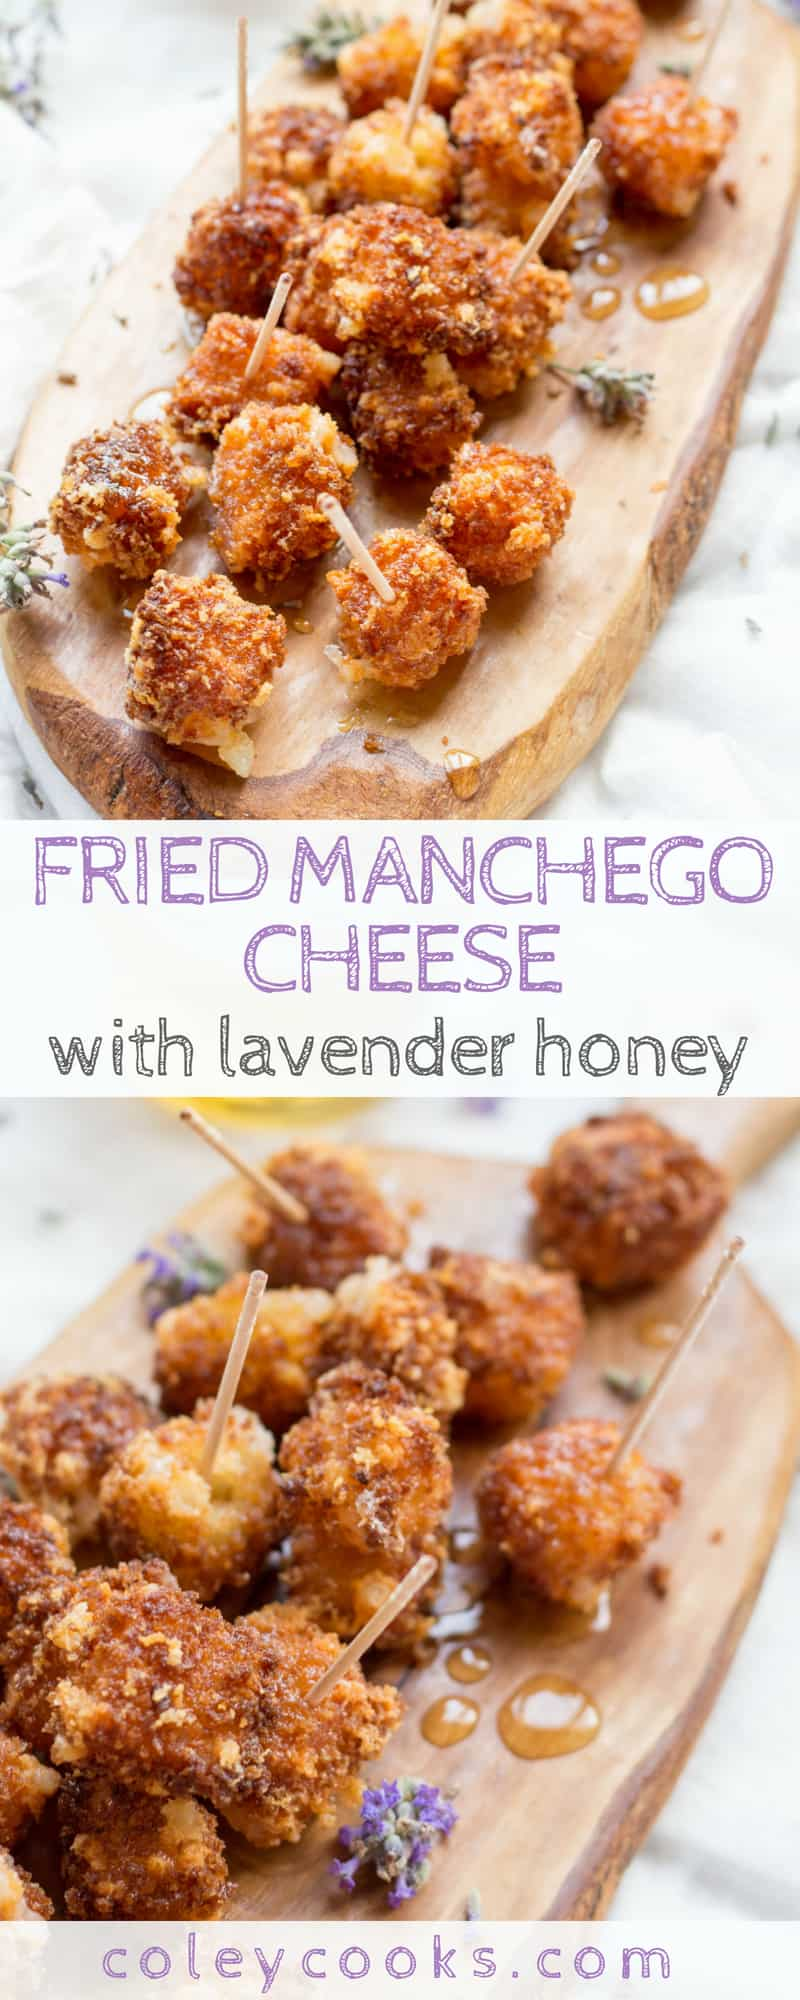 FRIED MANCHEGO CHEESE with LAVENDER HONEY | This easy cheesy appetizer recipe is the best fried cheese you'll ever try! Homemade lavender honey puts it over the top. #recipe #appetizer #Spanish #cheese | ColeyCooks.com